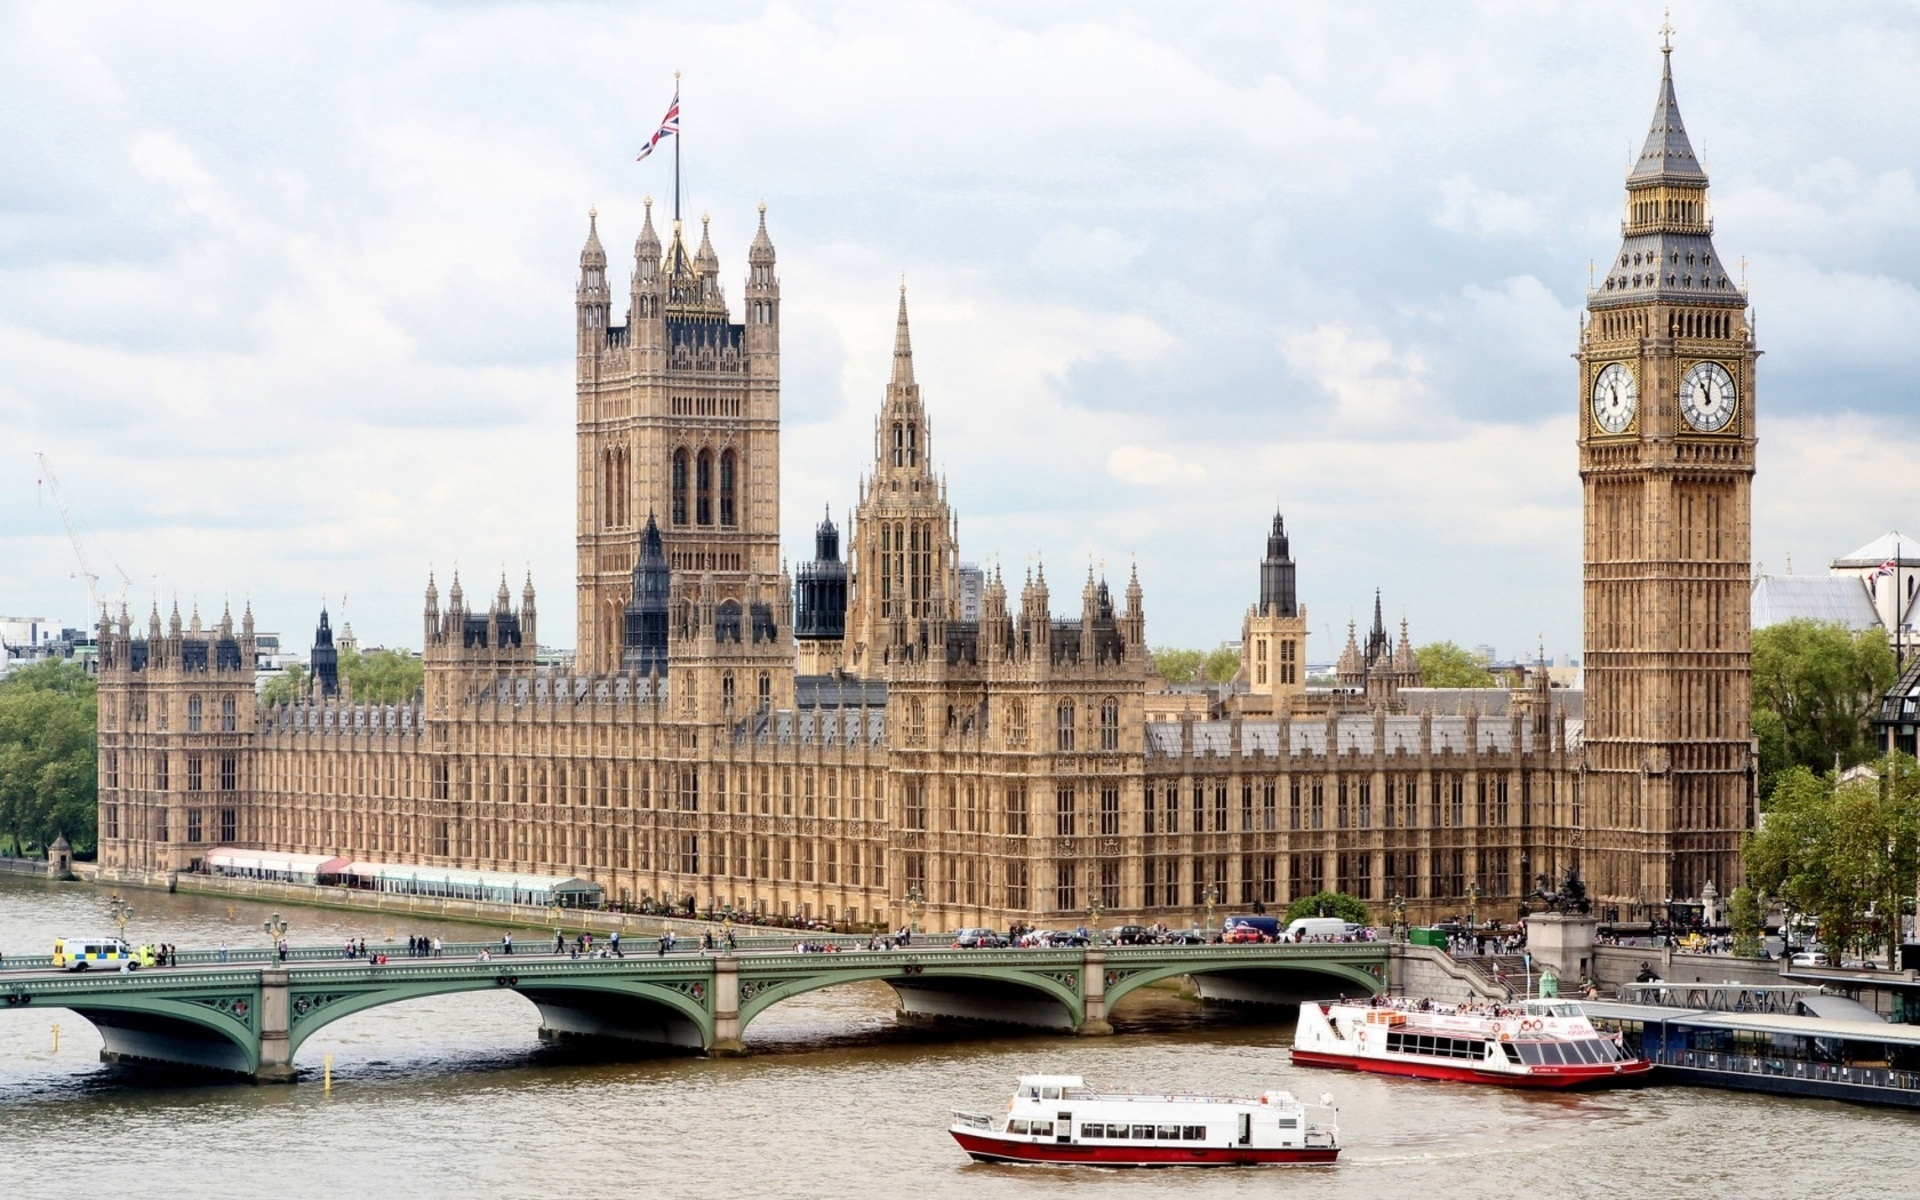 26307 download wallpaper Landscape, Cities, Rivers, Architecture, London, Big Ben screensavers and pictures for free